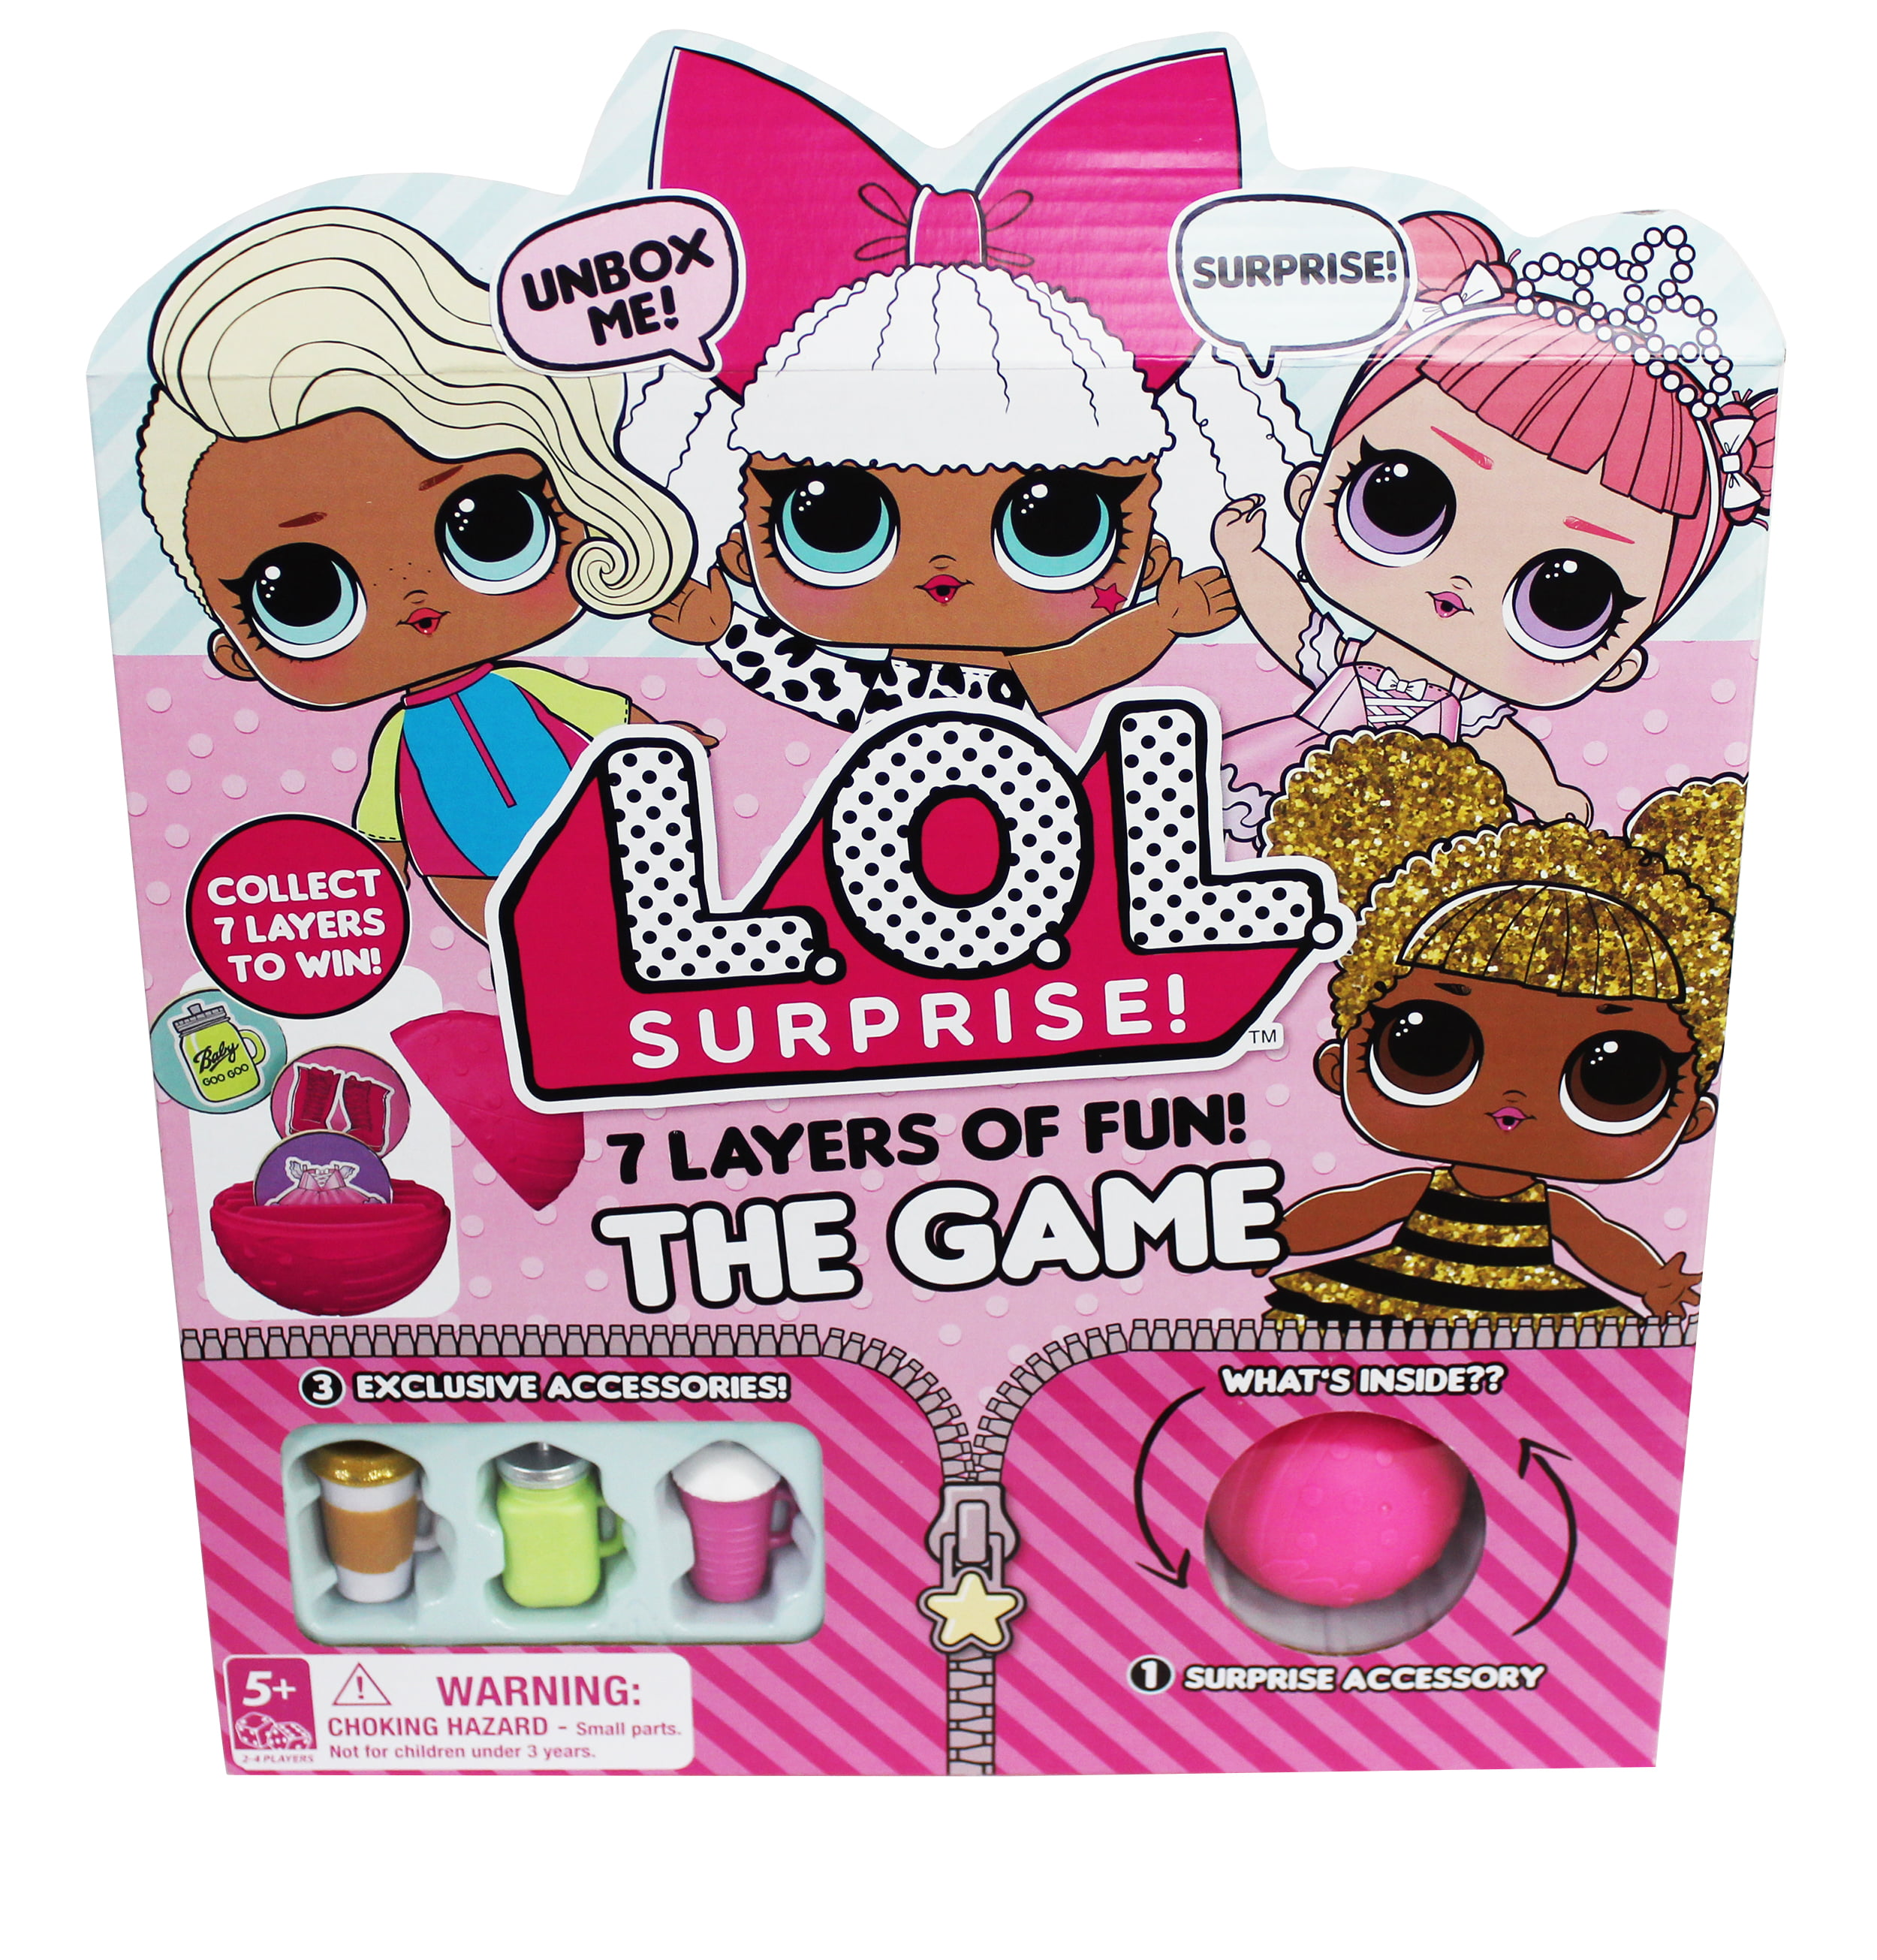 L.O.L. Surprise! 7 Layers of Fun Board Game